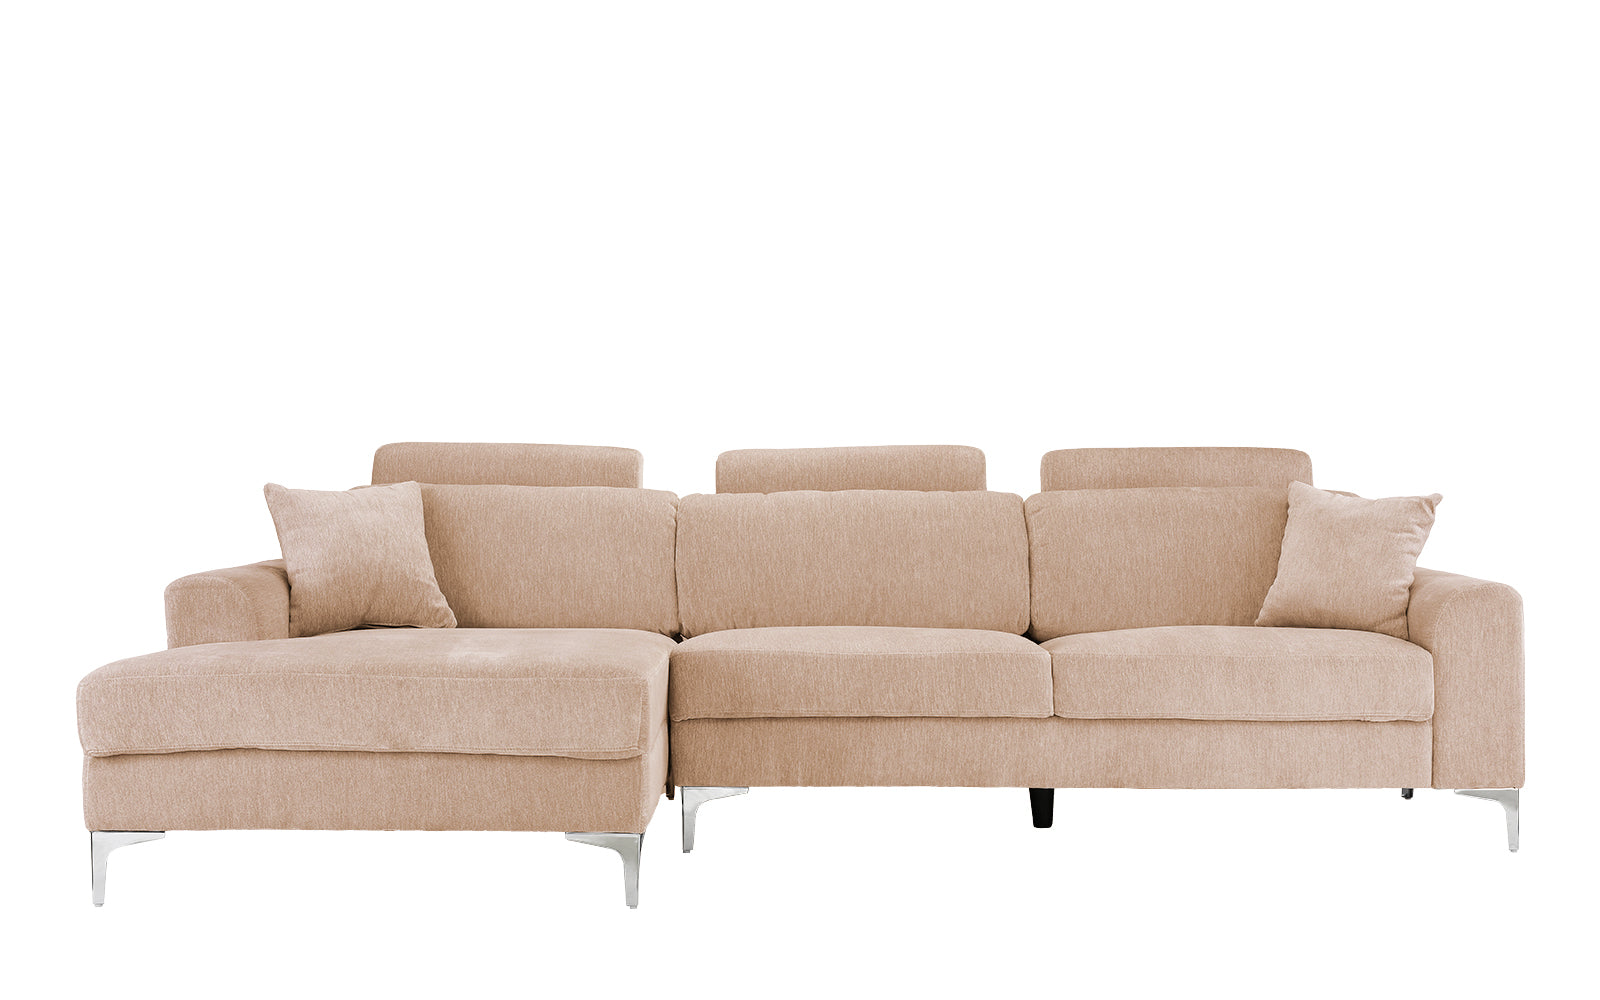 Kason Large Modern Linen Sectional Sofa